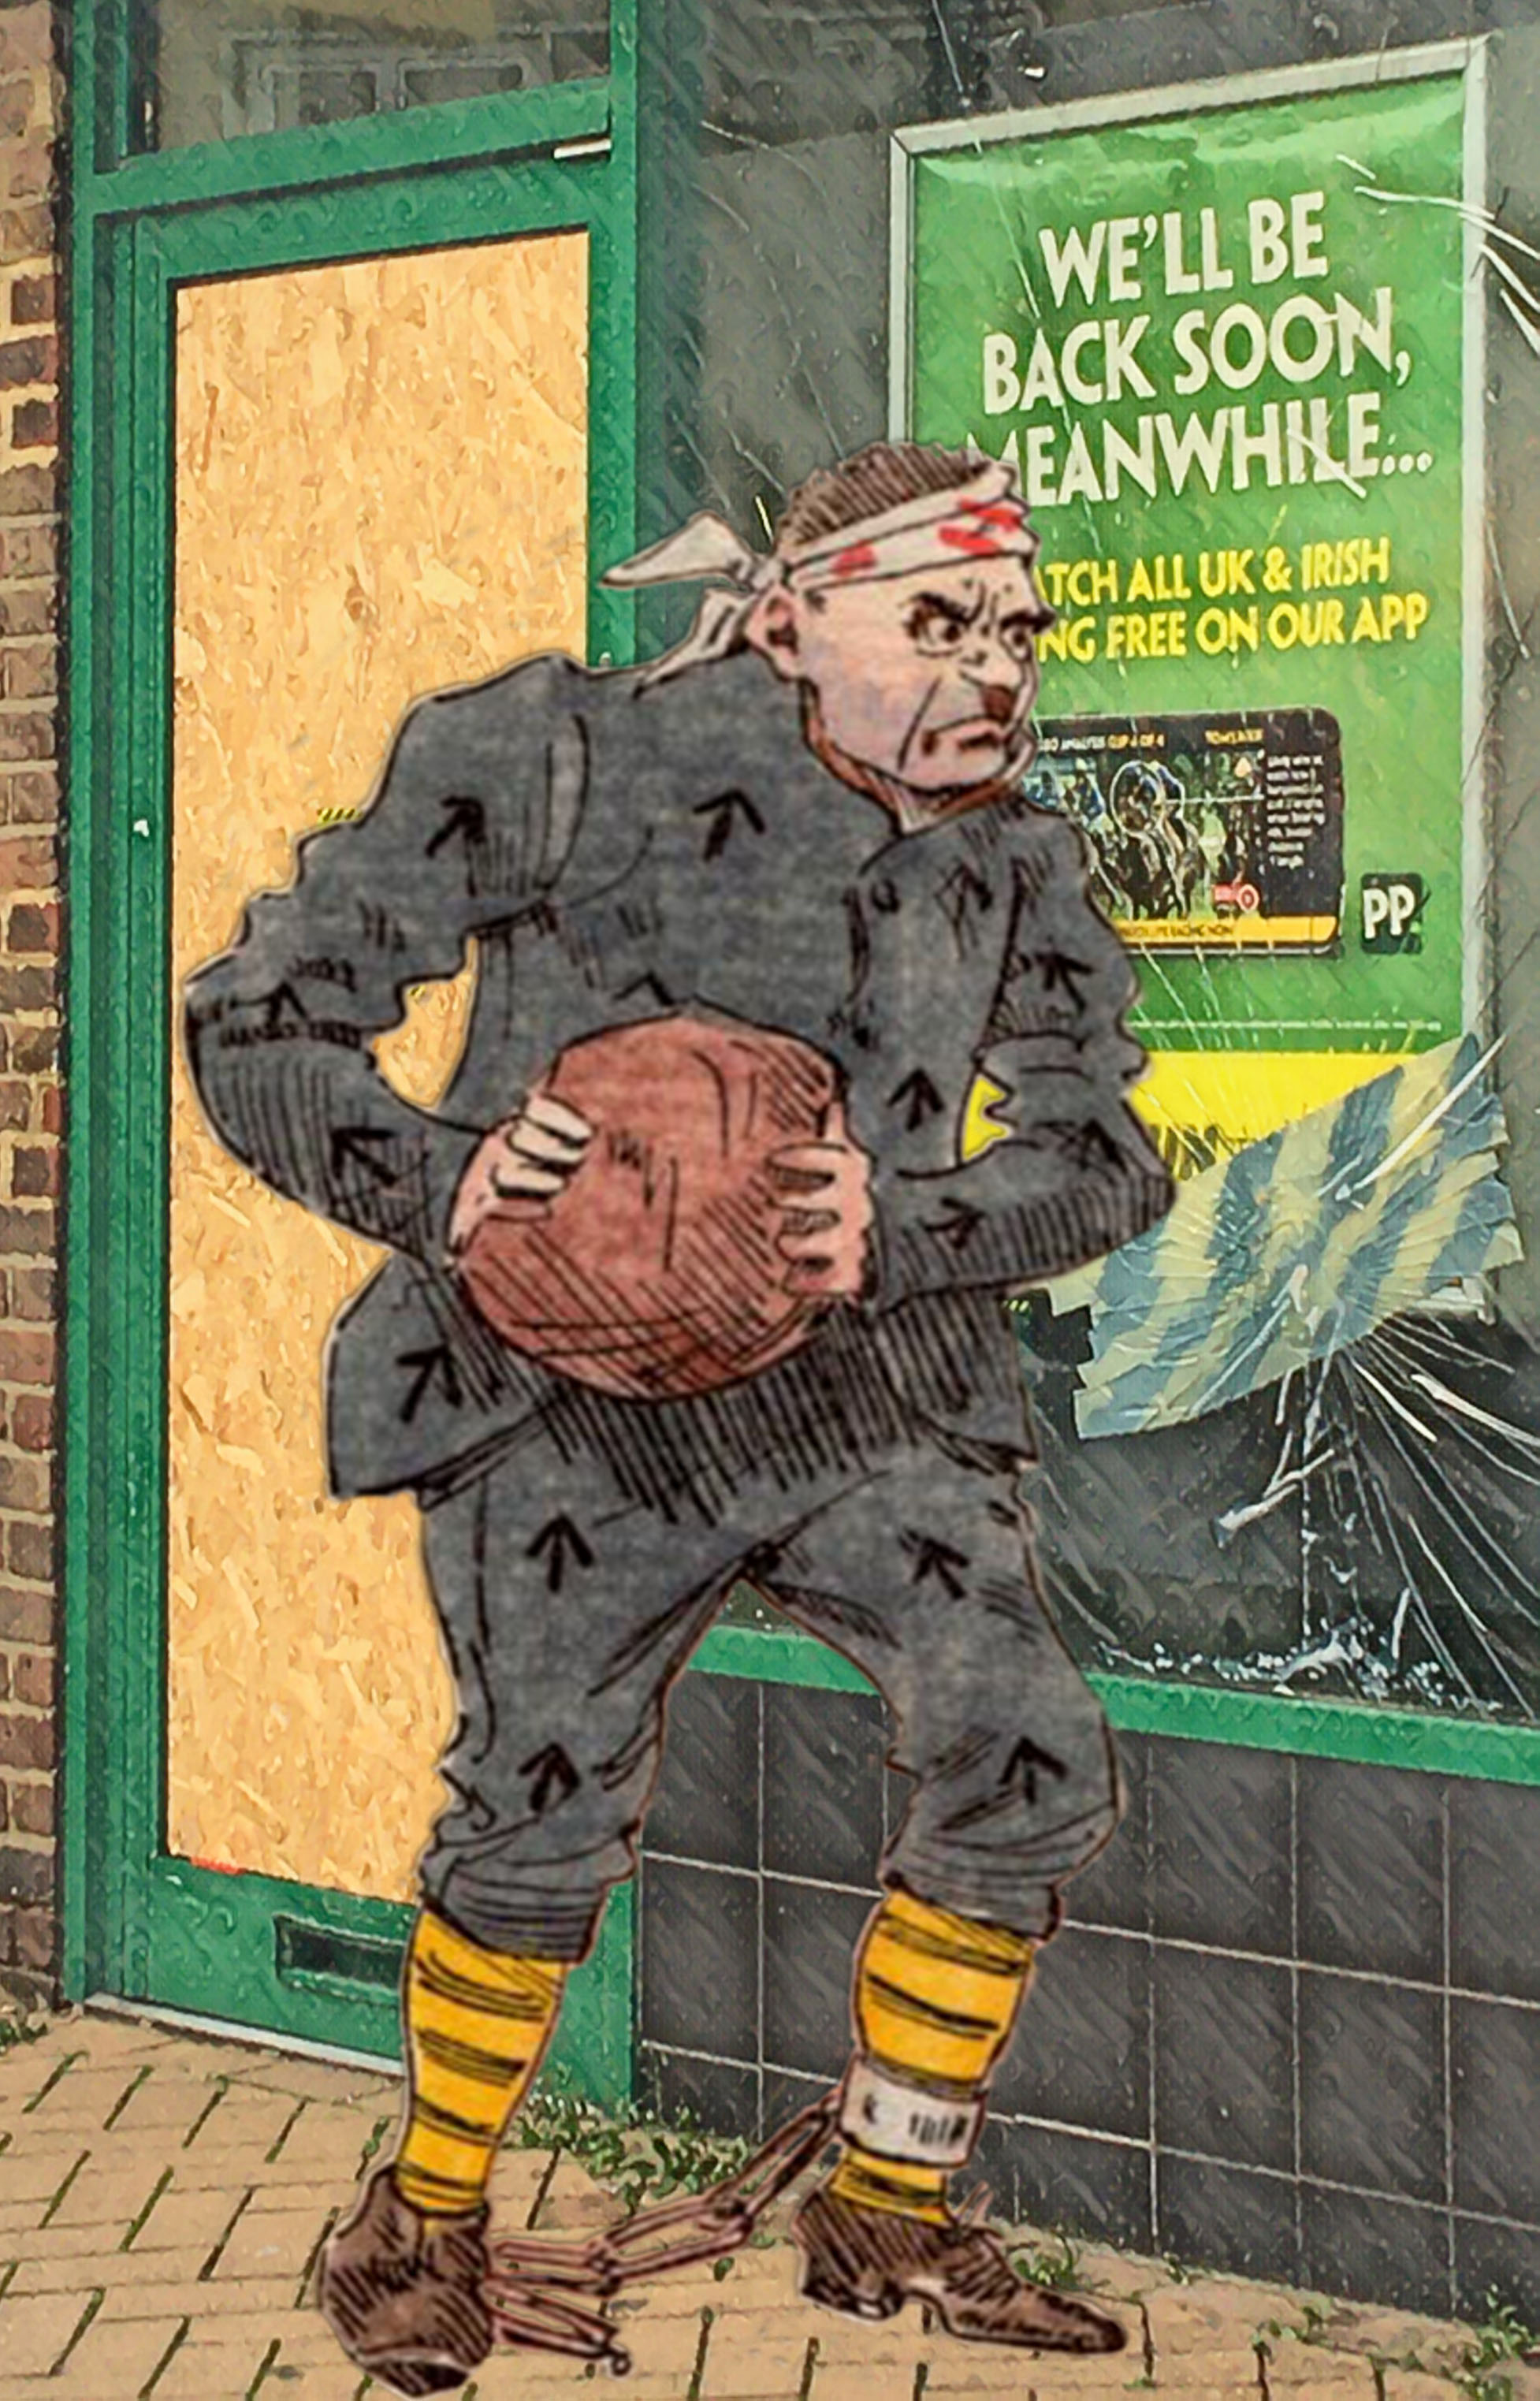 """Joseph Clayton Clark's (aka Kyd) illustration of Charles Dickens's """"Escaped Convict Magwitch"""" from """"Great Expectations"""" (c.1900) outside the Evelyn Street Paddy Power"""